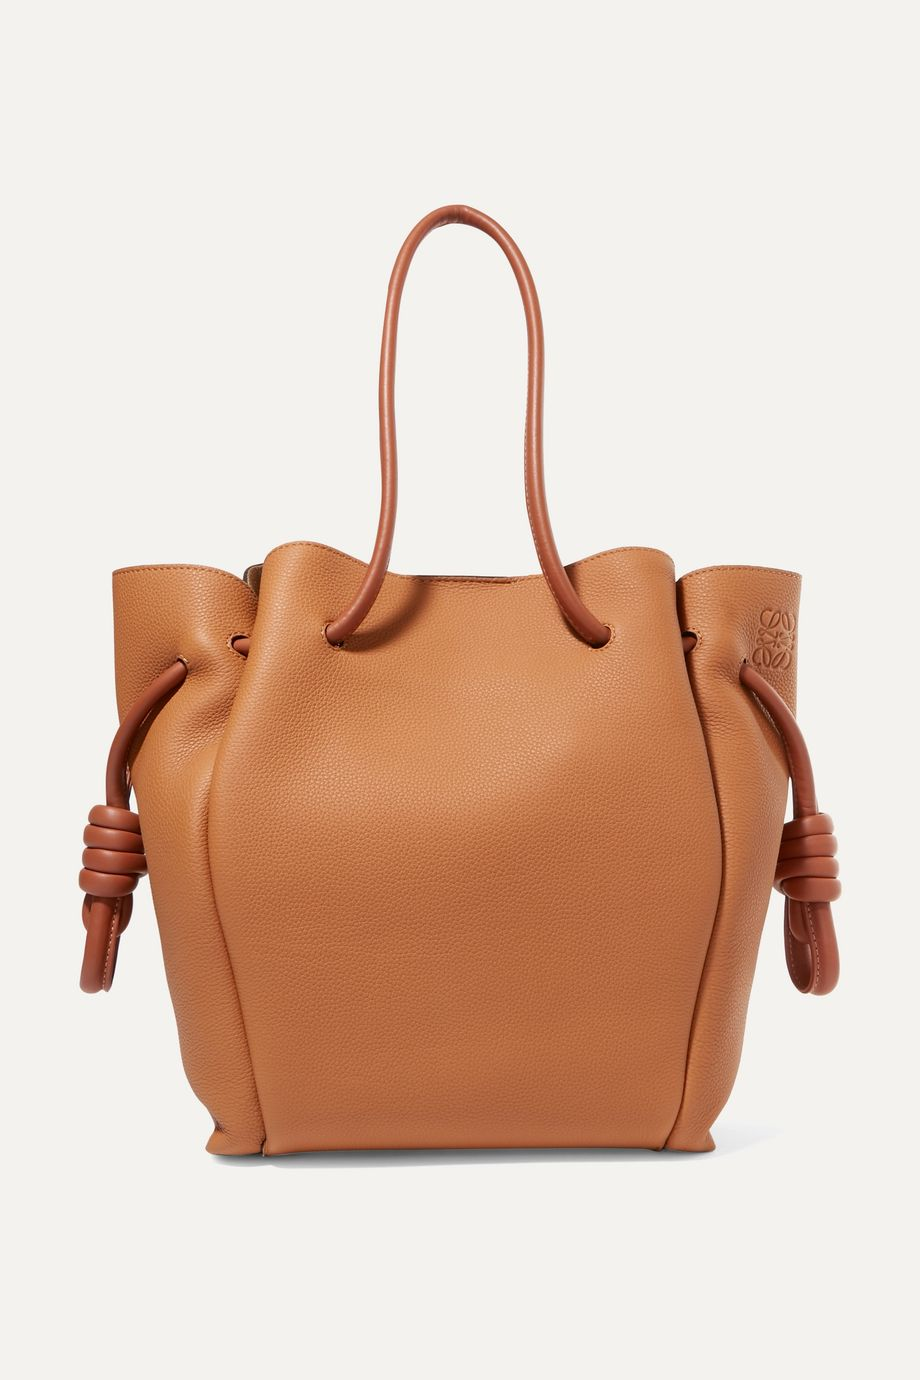 Loewe Flamenco small textured-leather tote